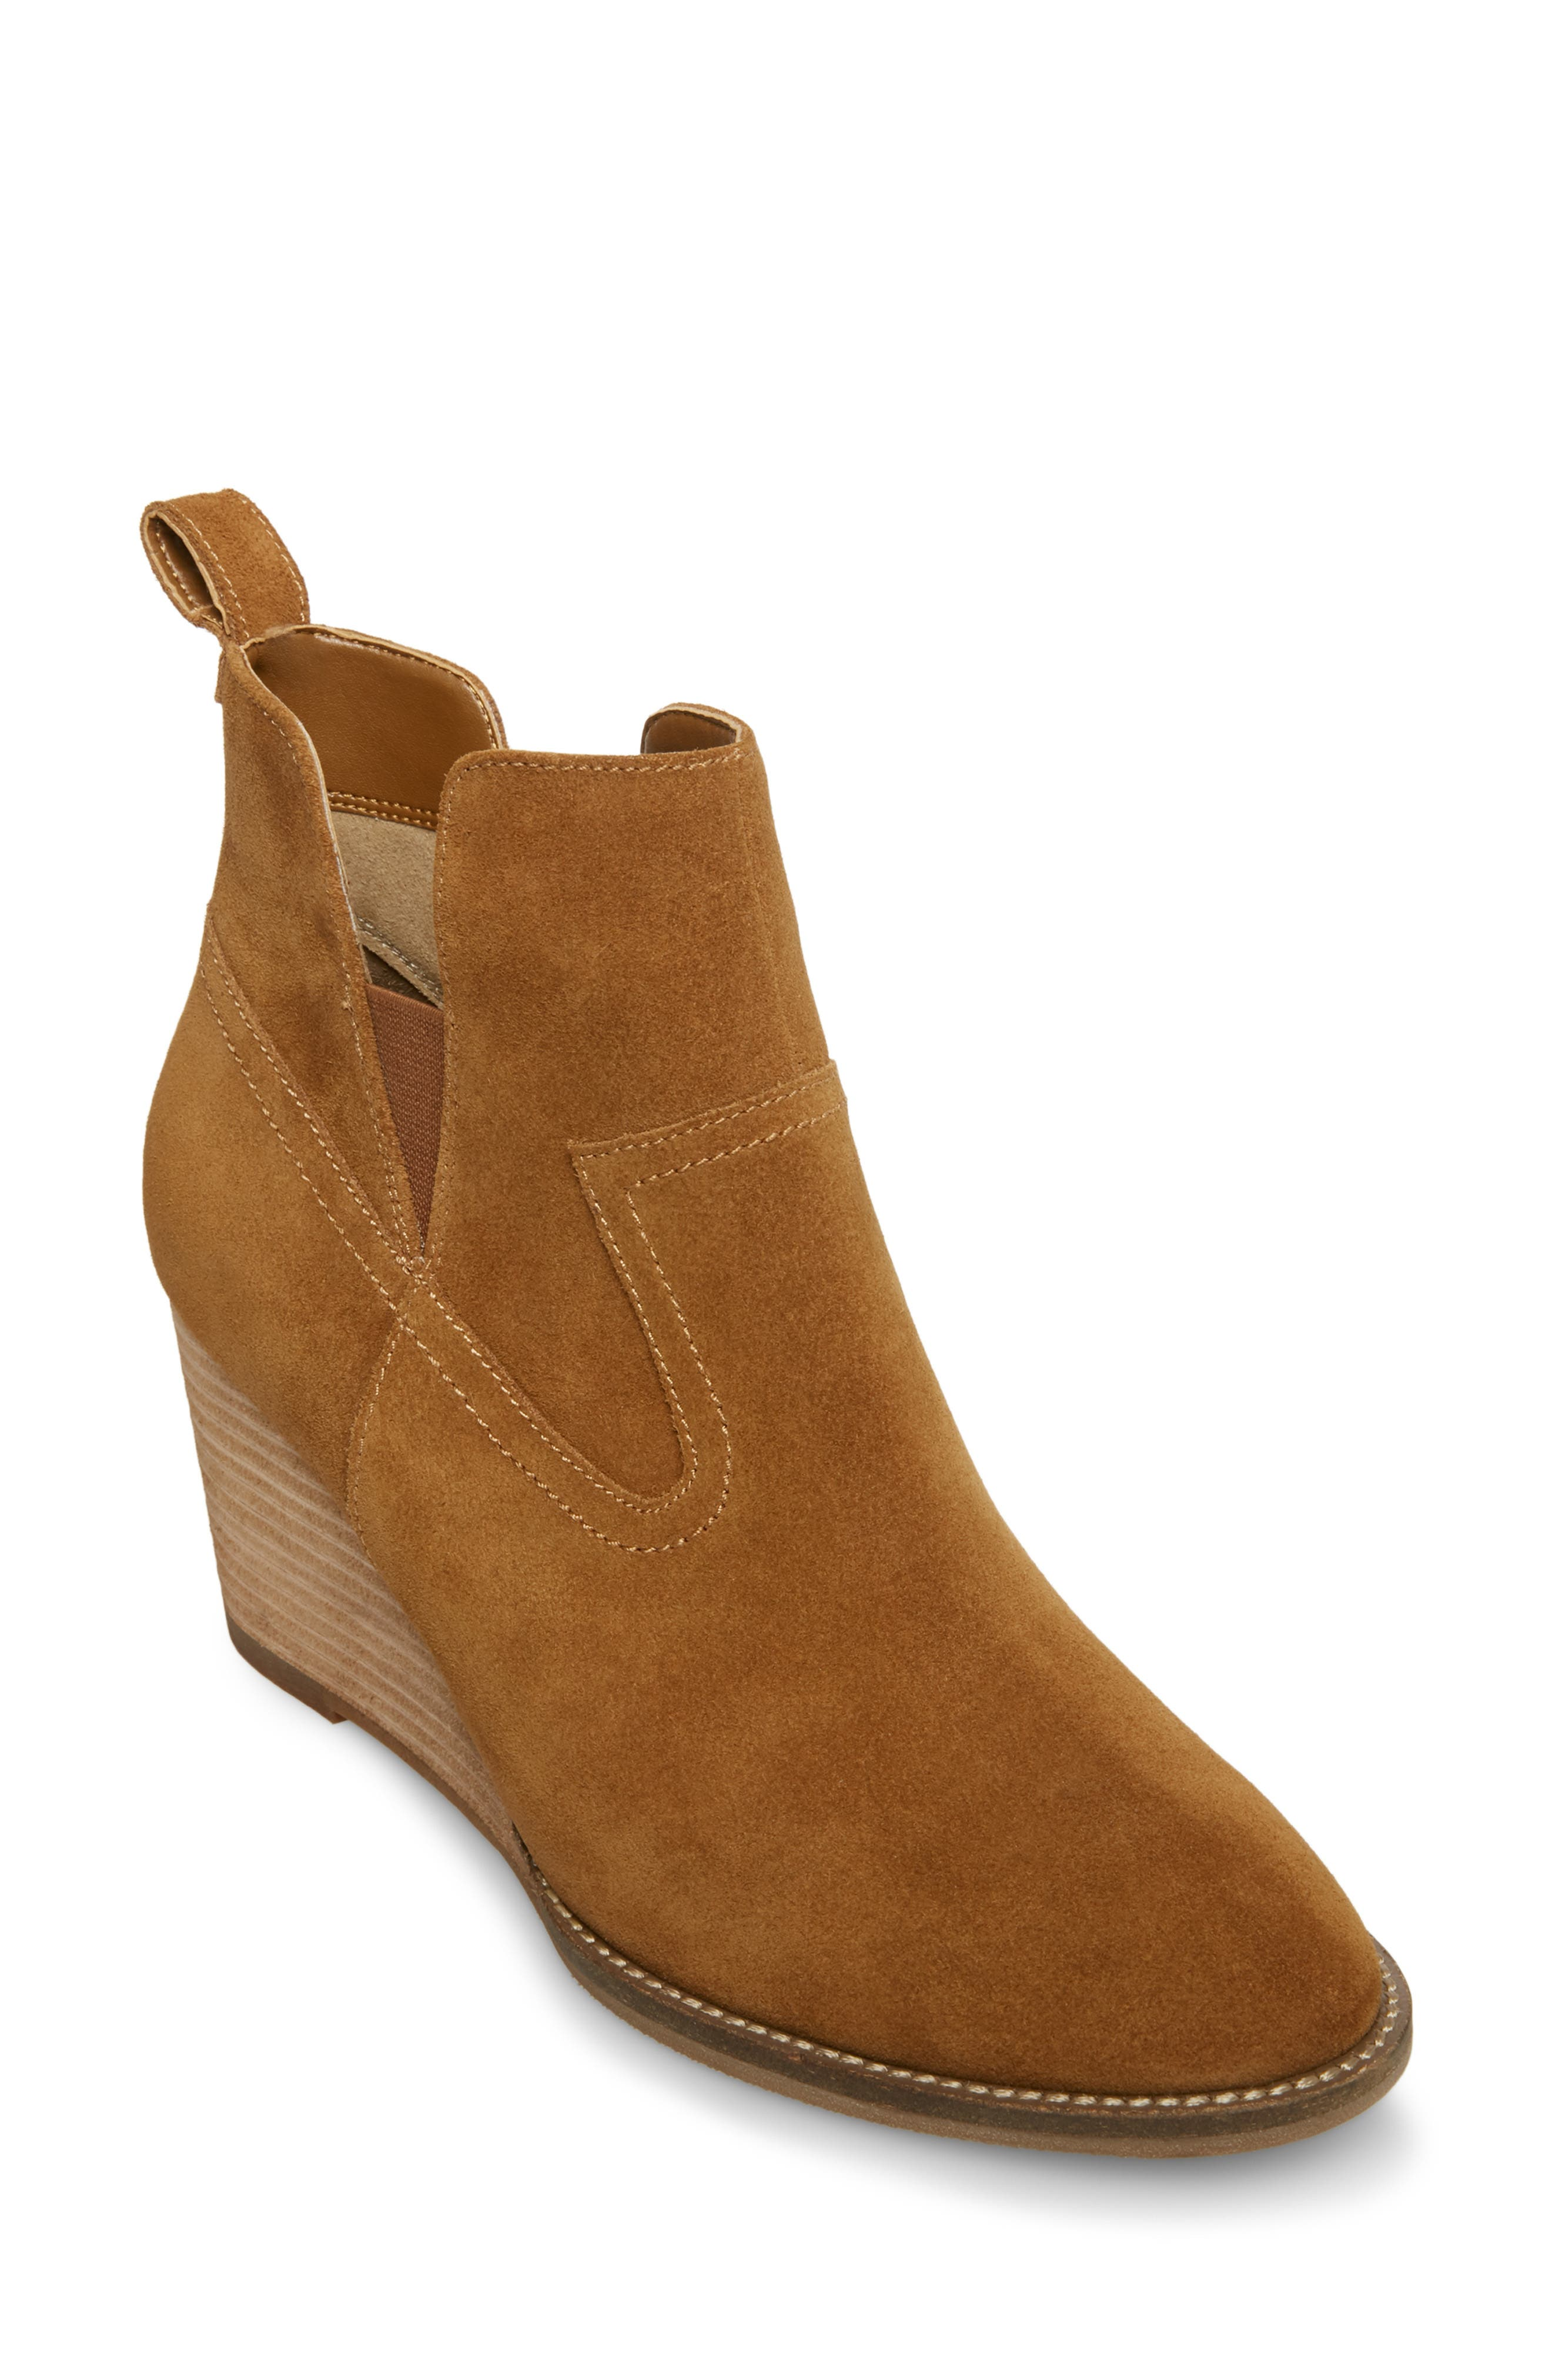 Irving Waterproof Wedge Bootie,                             Main thumbnail 1, color,                             CAMEL SUEDE